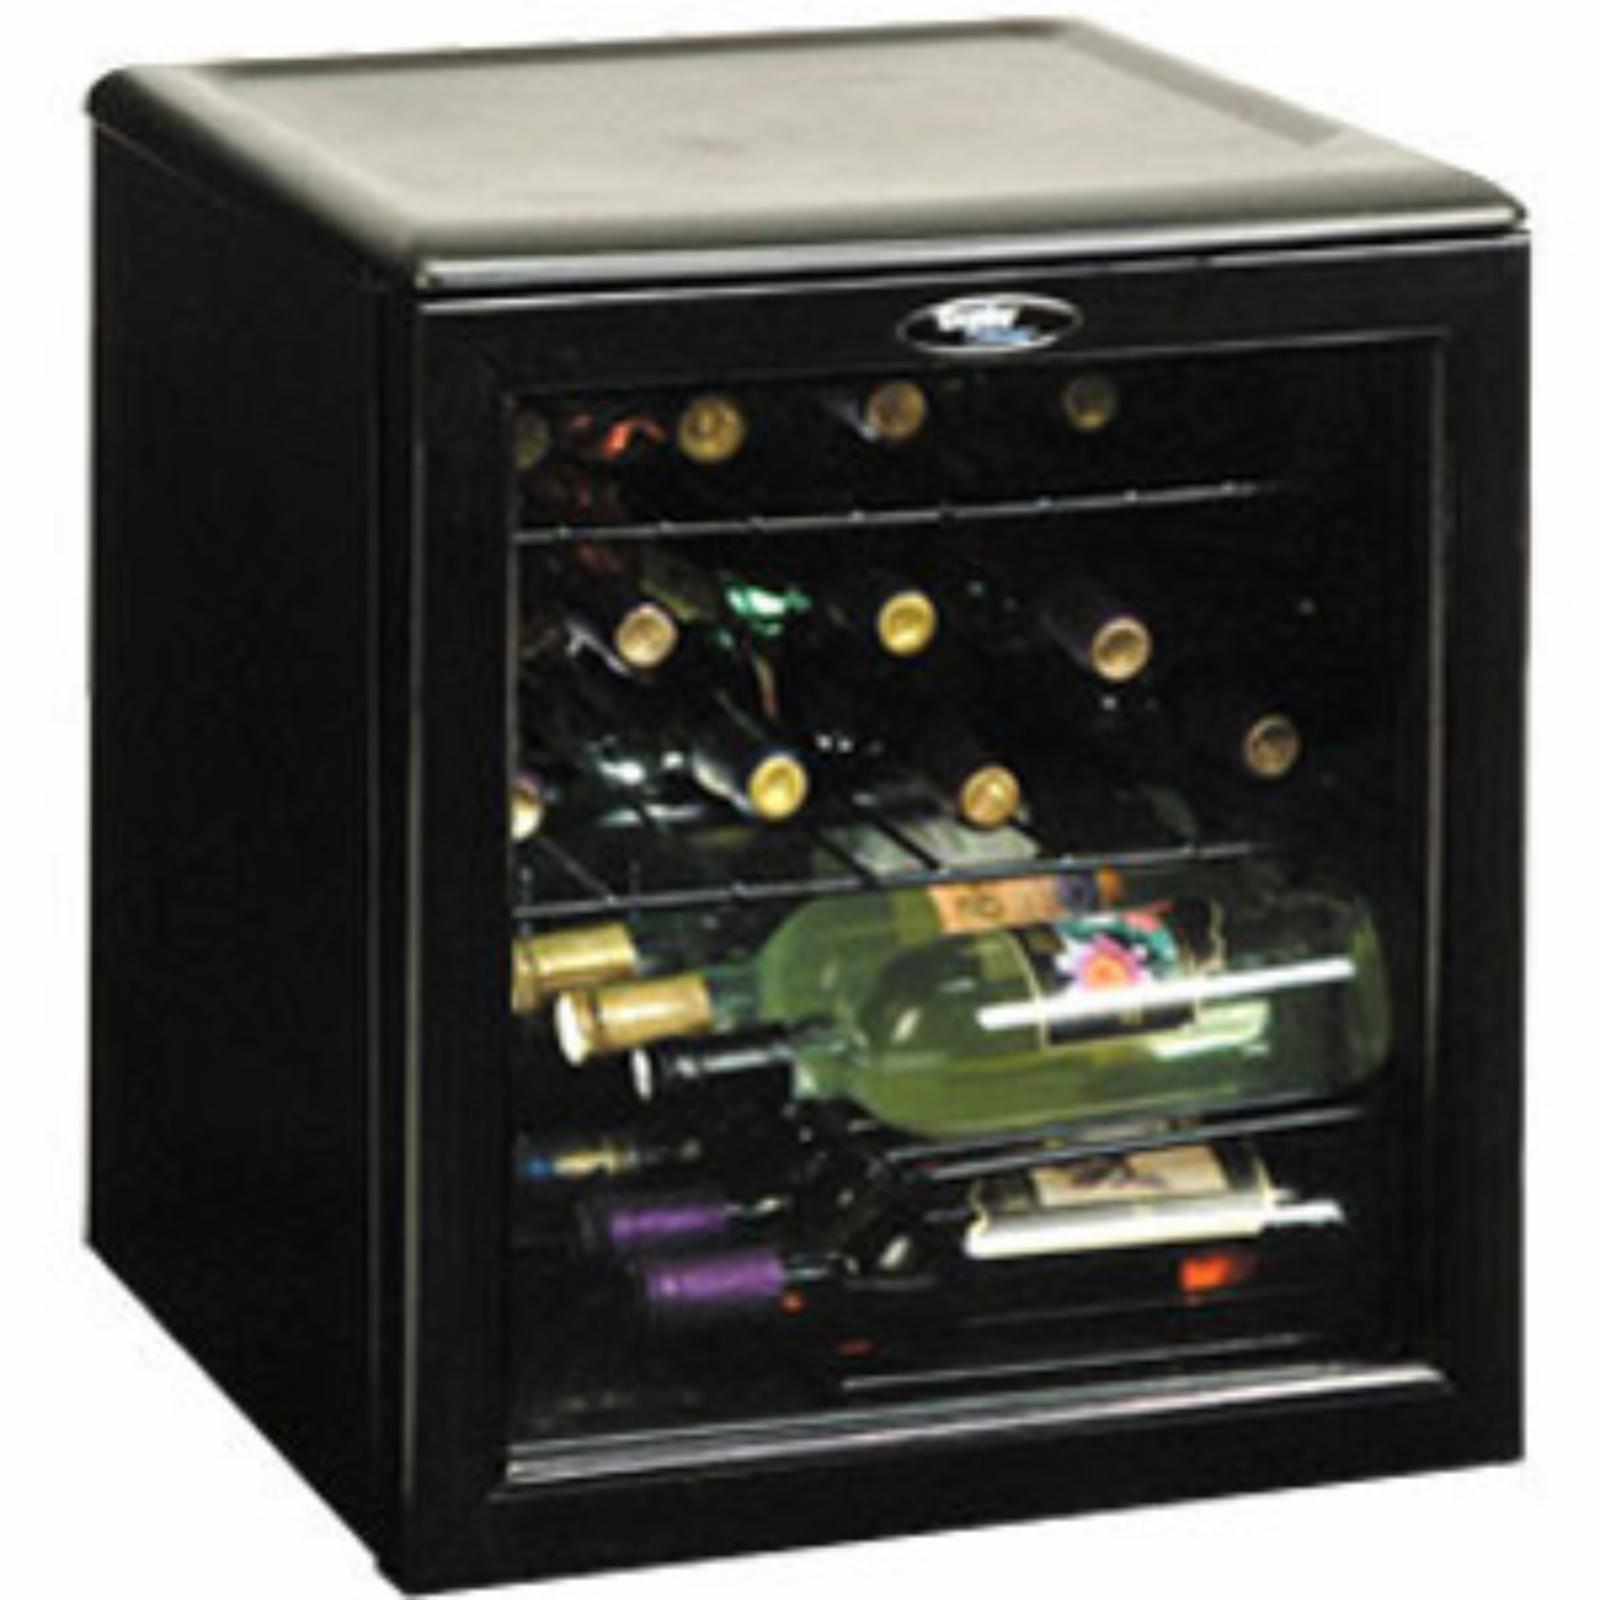 Danby DWC172BL 17 Bottle Wine Cooler - DWC172BL